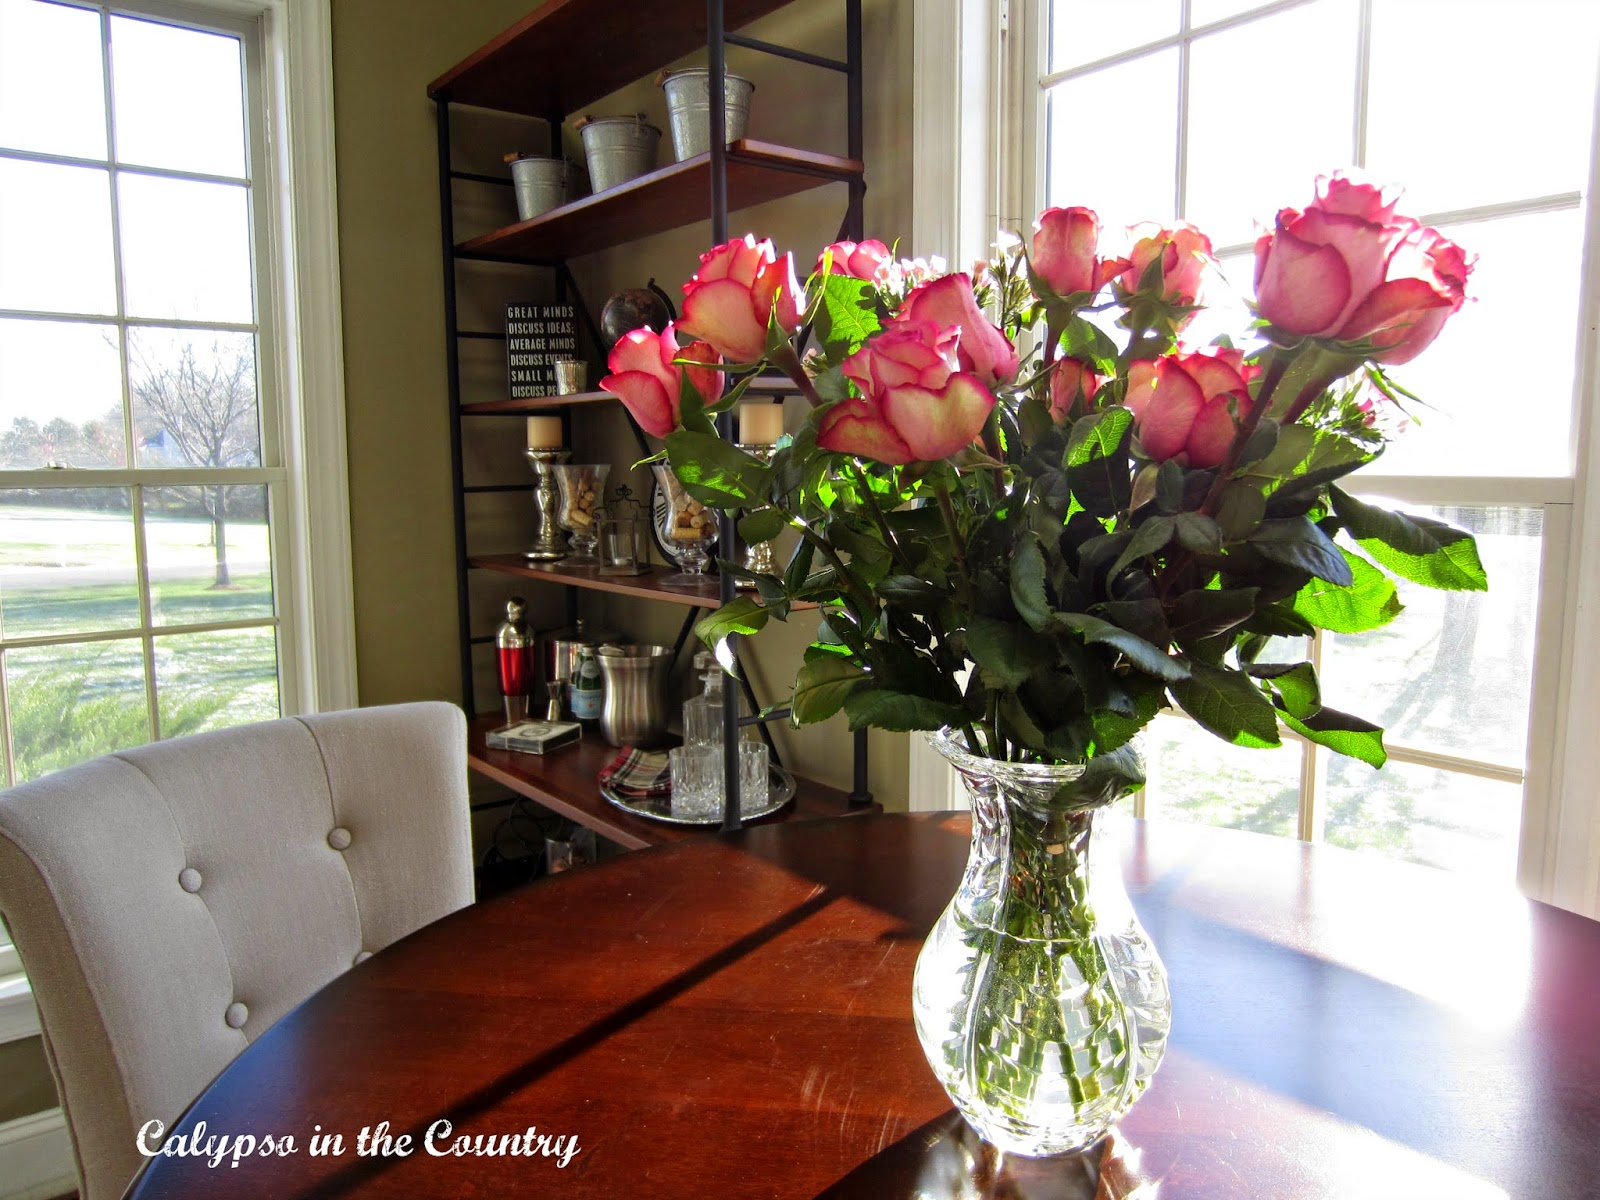 Calypso In The Country: The Bouqs